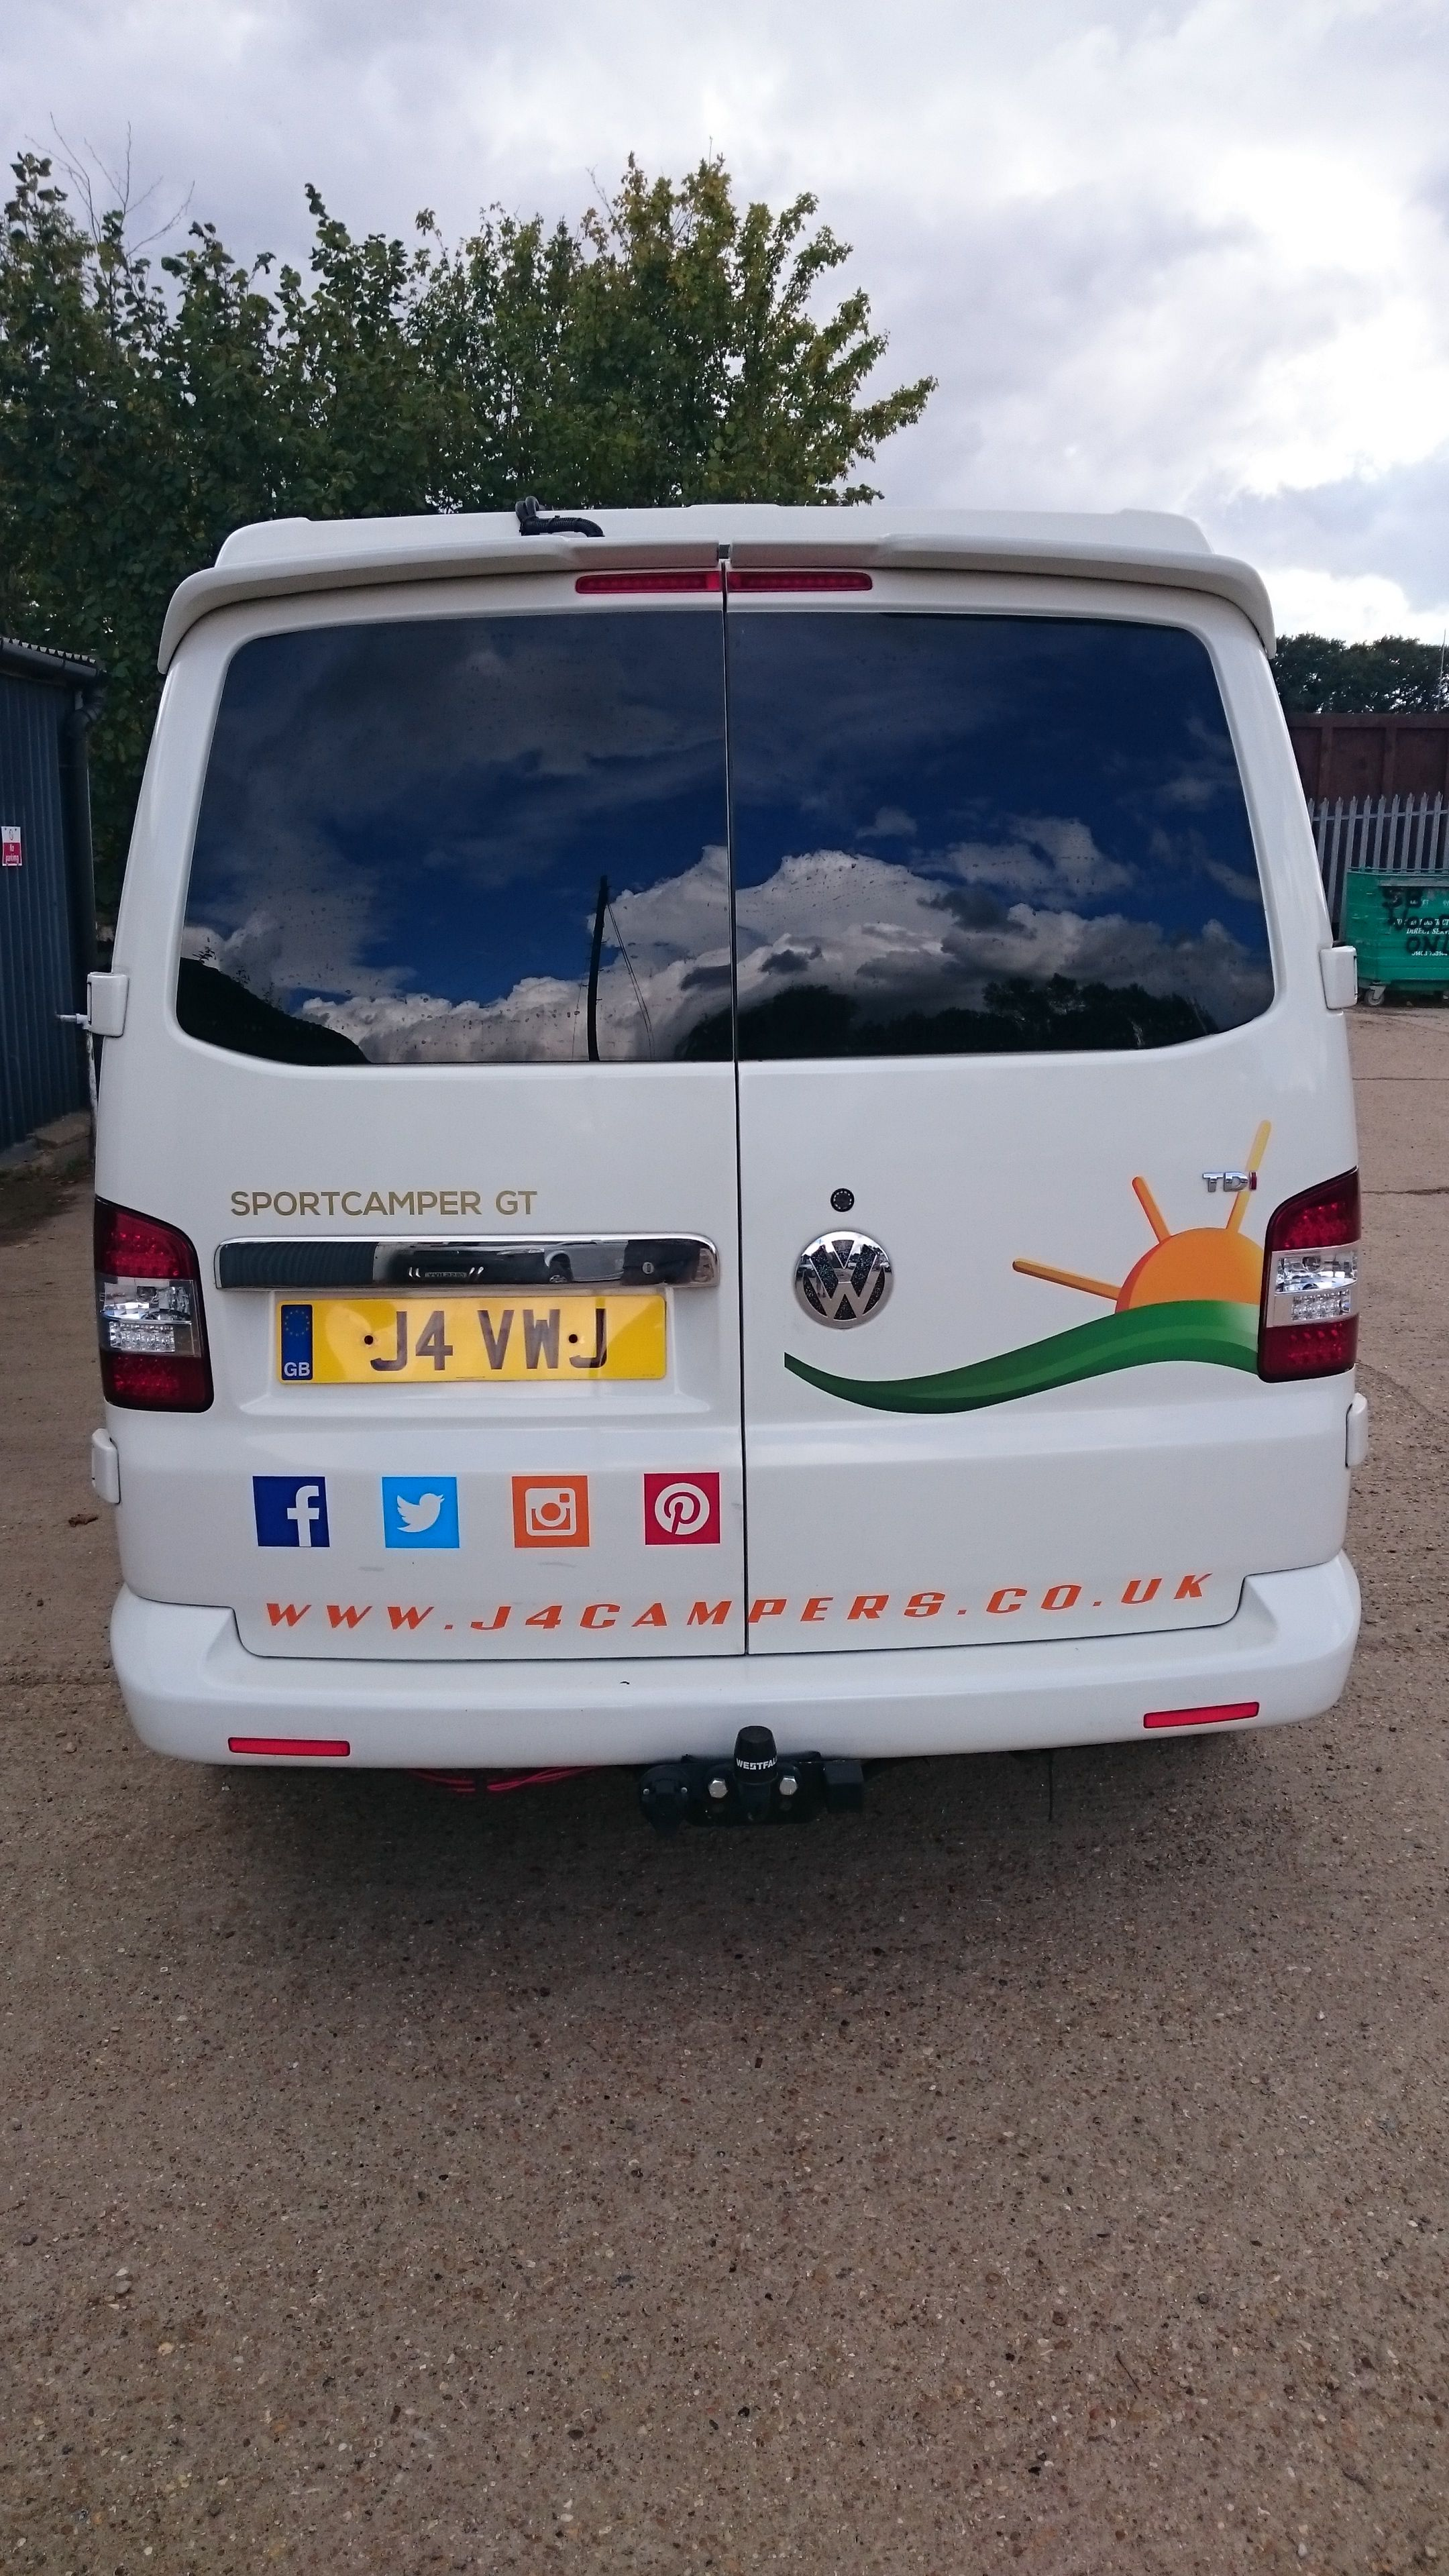 Pin by J 4 Campers on Campervan Hire in Sussex - J 4 Campers